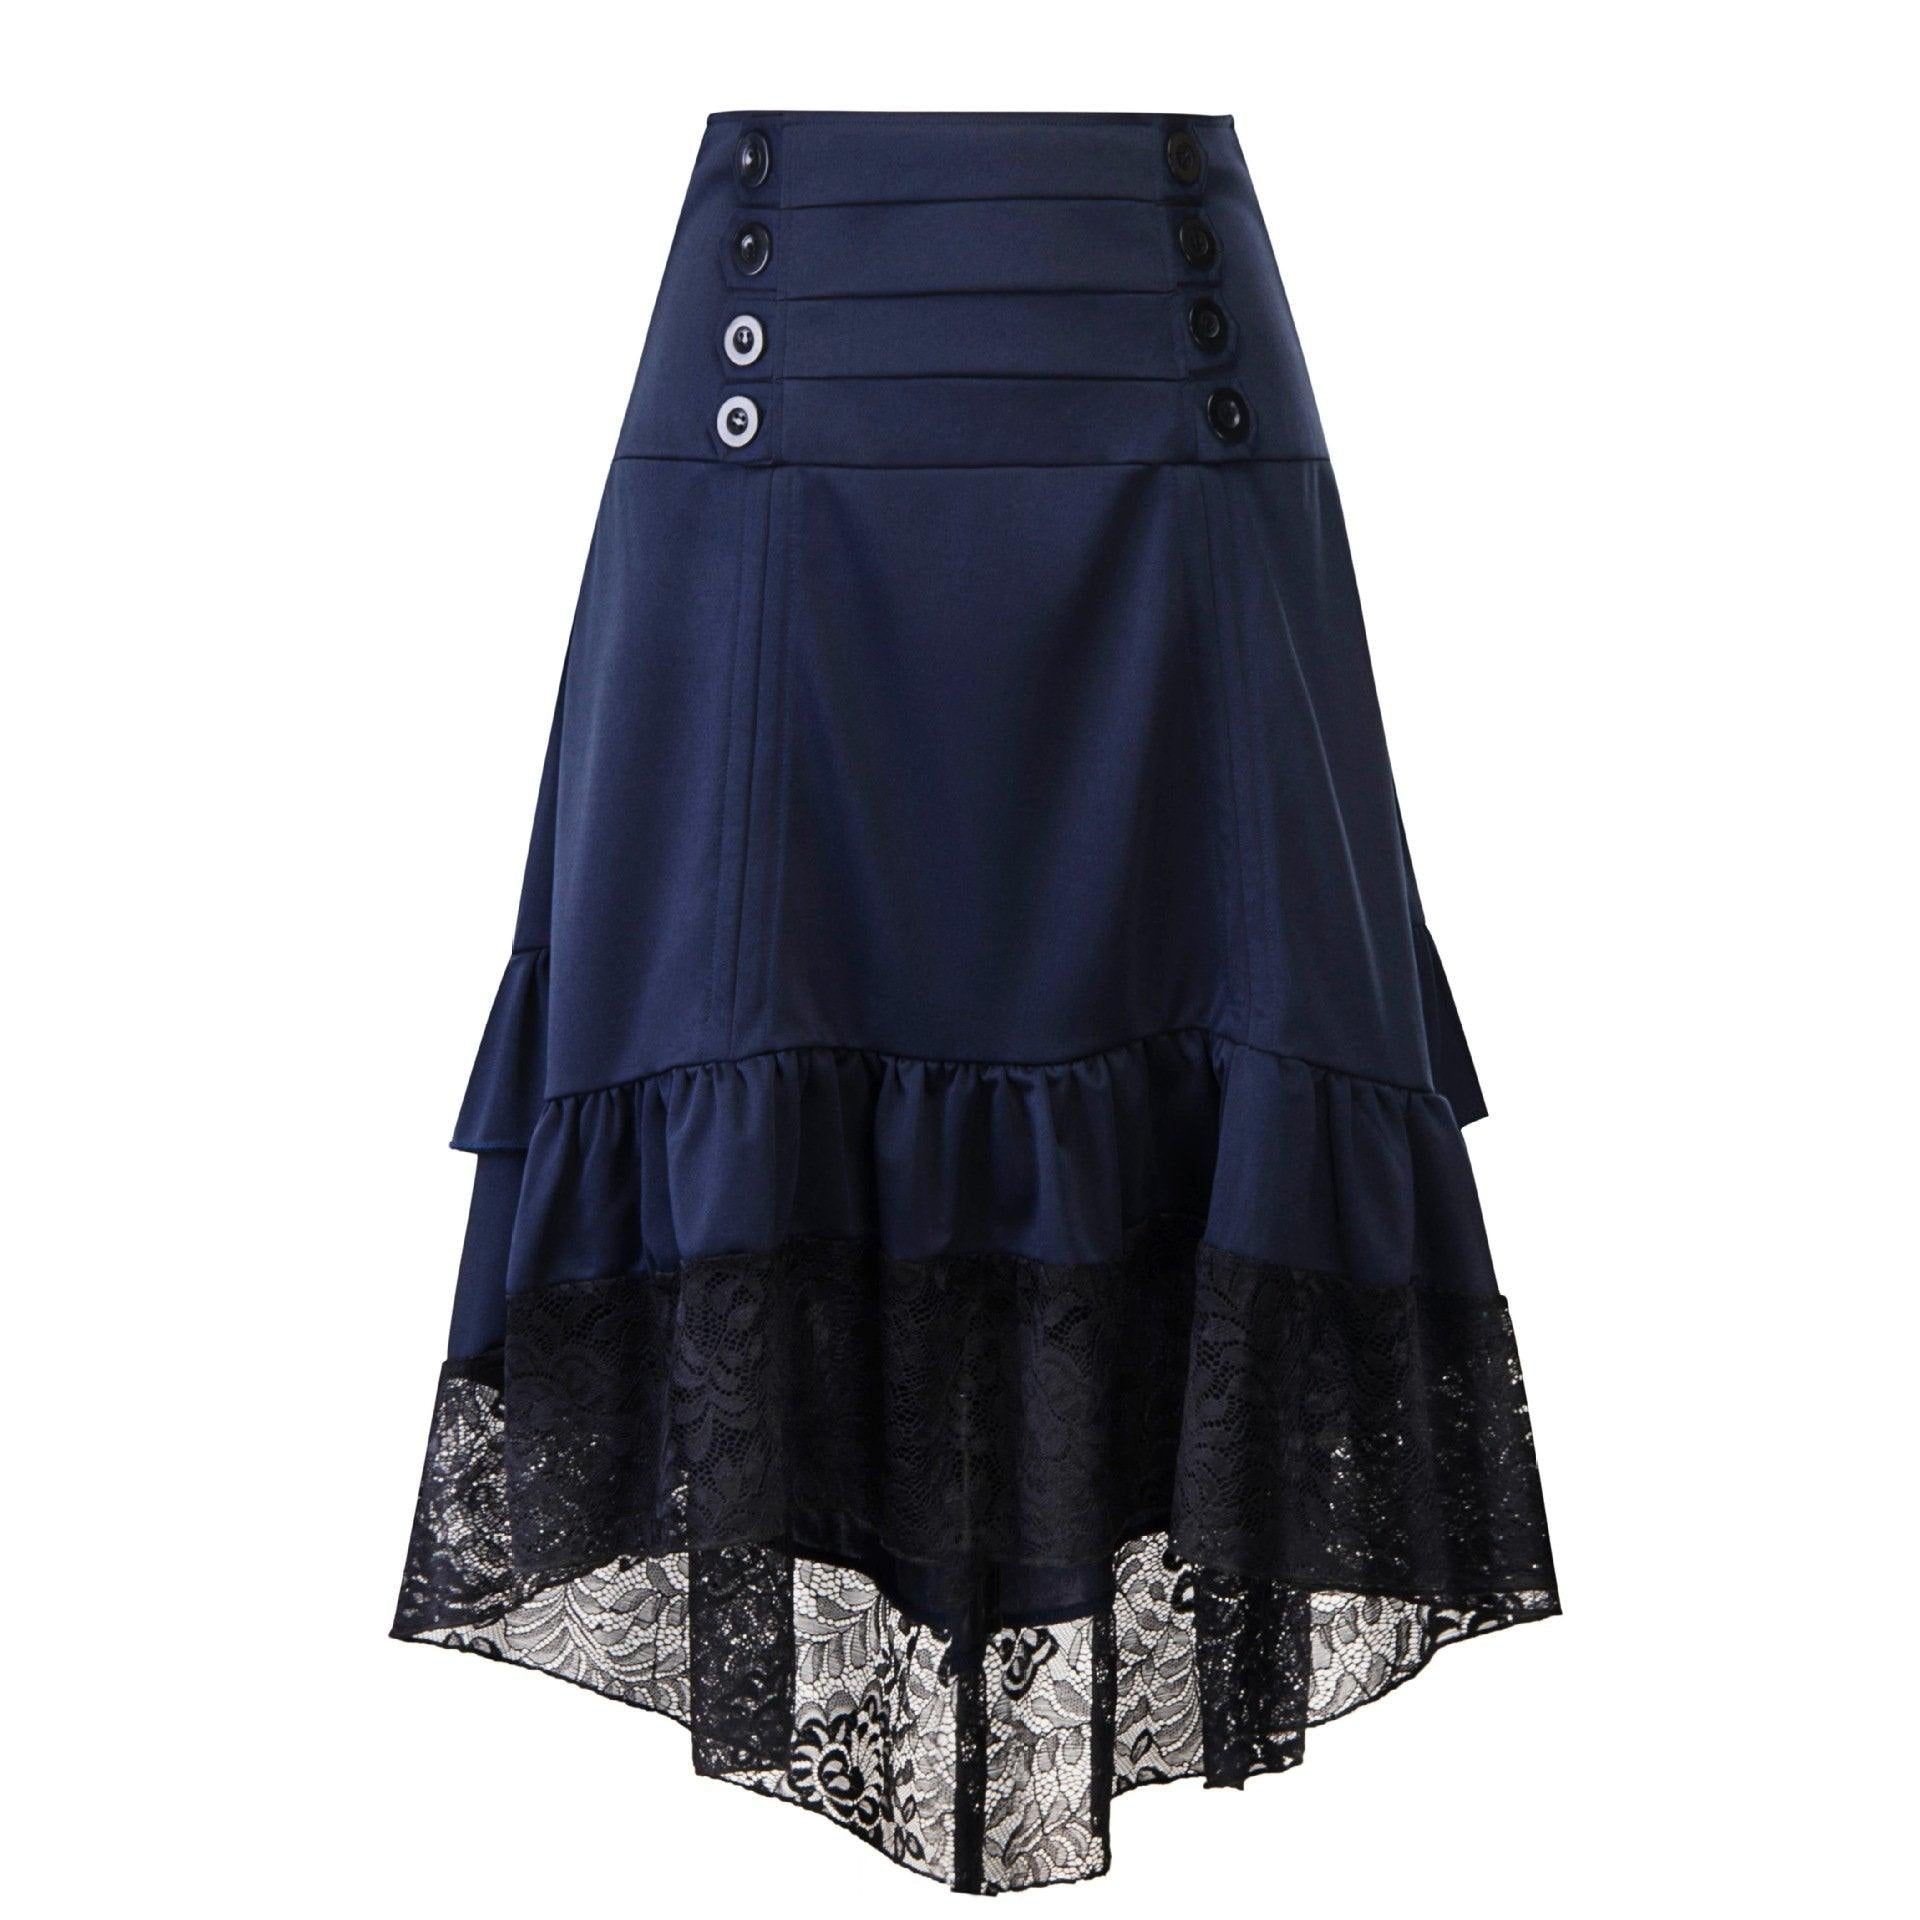 Bestkawaii-Irregular-Lace-Skirt